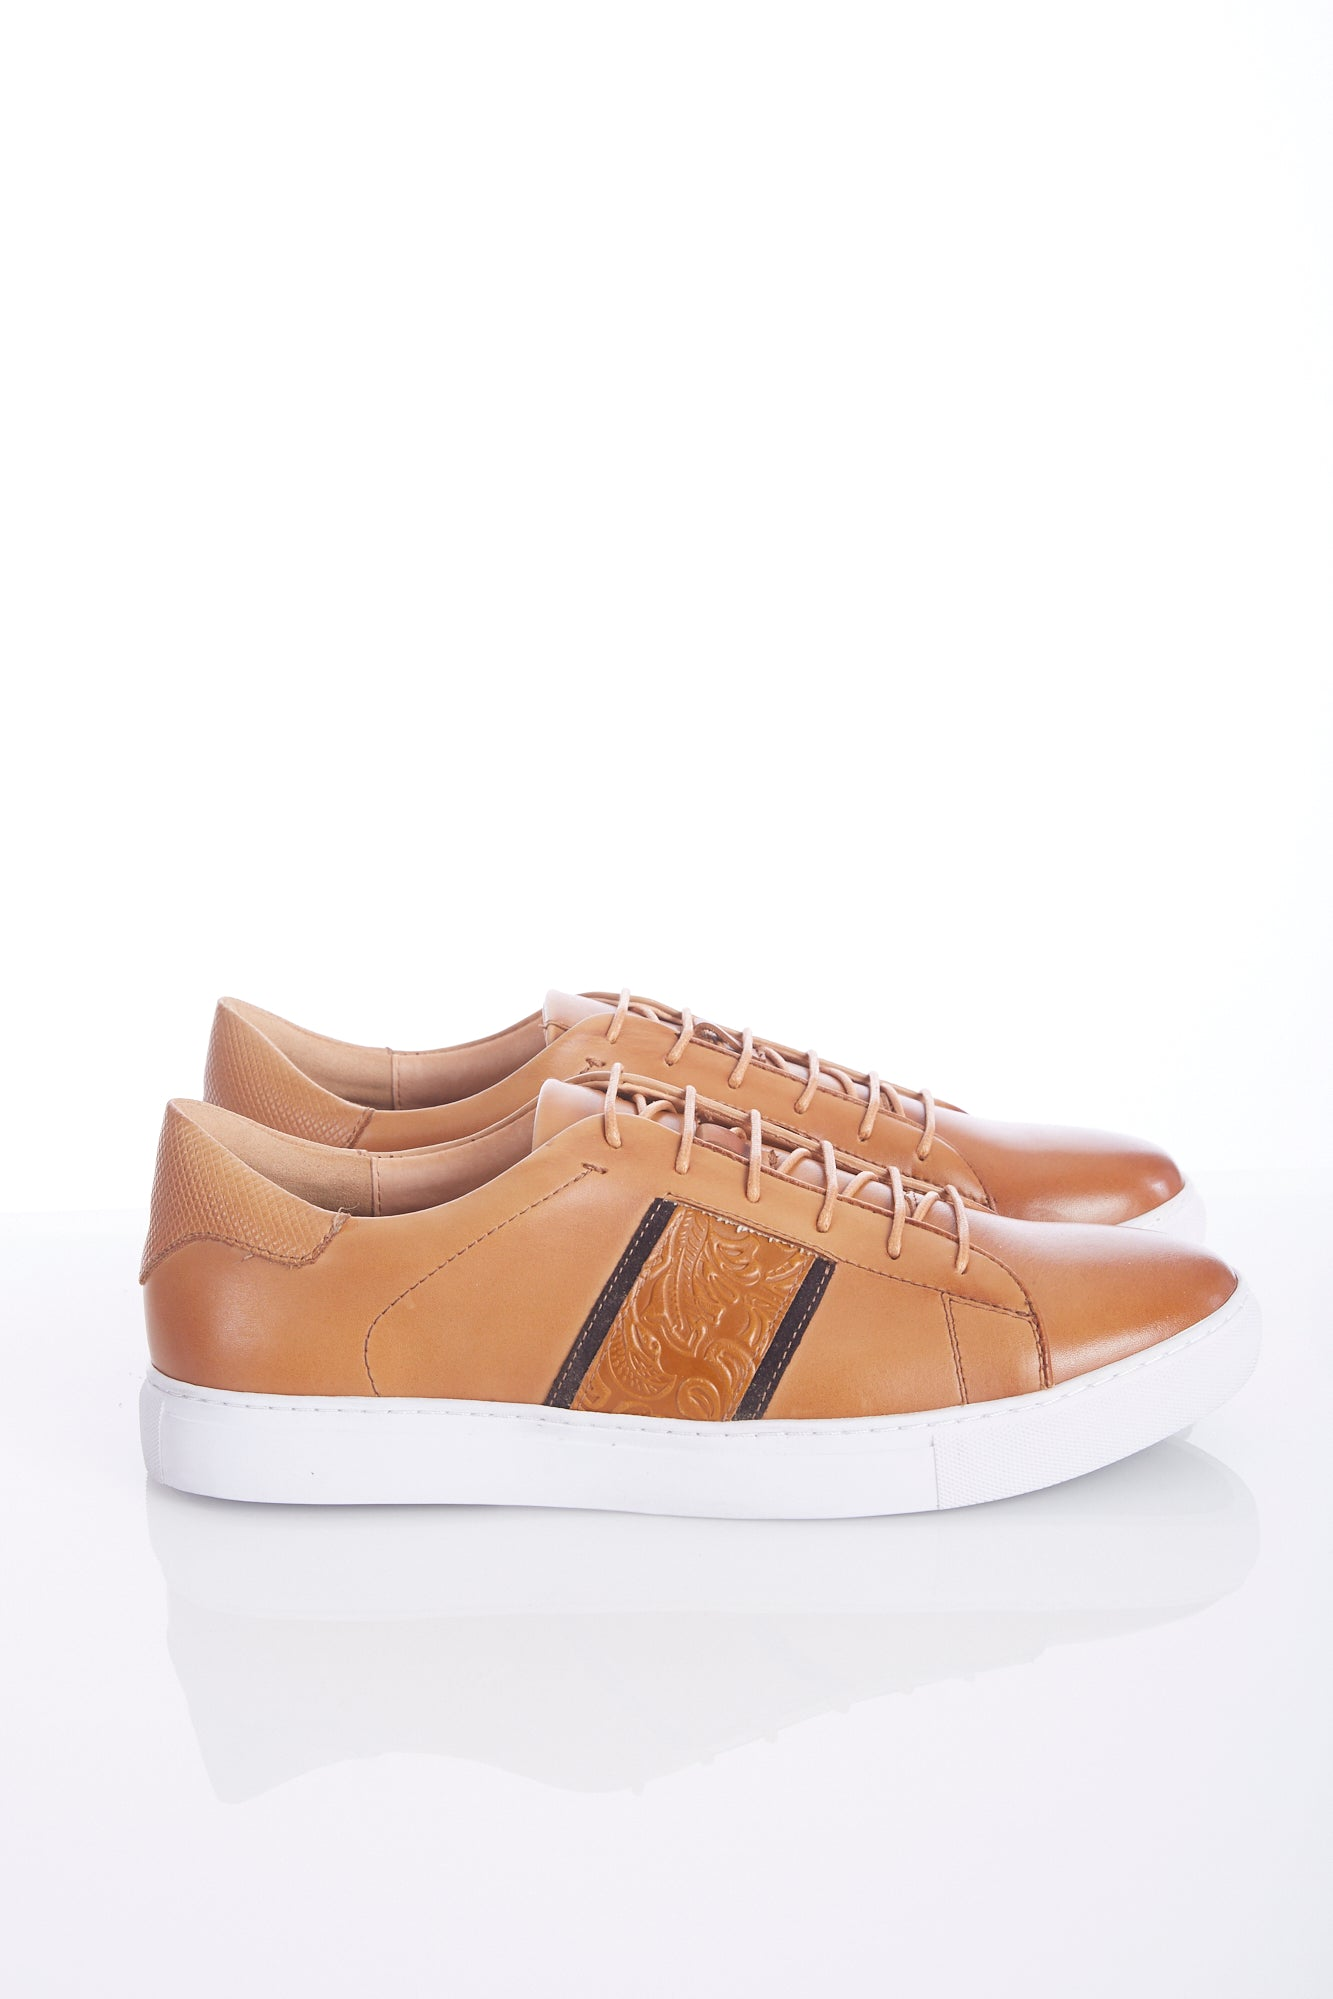 Robert Graham Tan 'Delgado' Sneaker Shoe